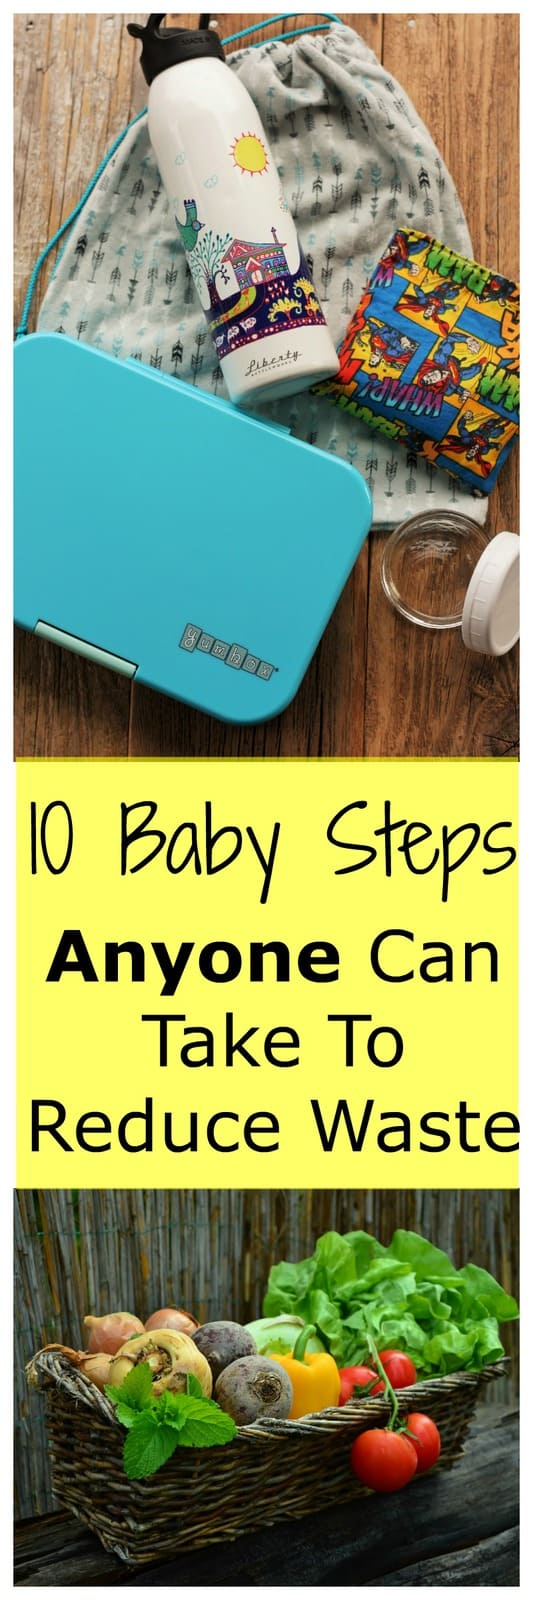 10 Baby Steps To Reduce Waste in Your Life are simple and actionable steps you can take to make your life and home more sustainable.